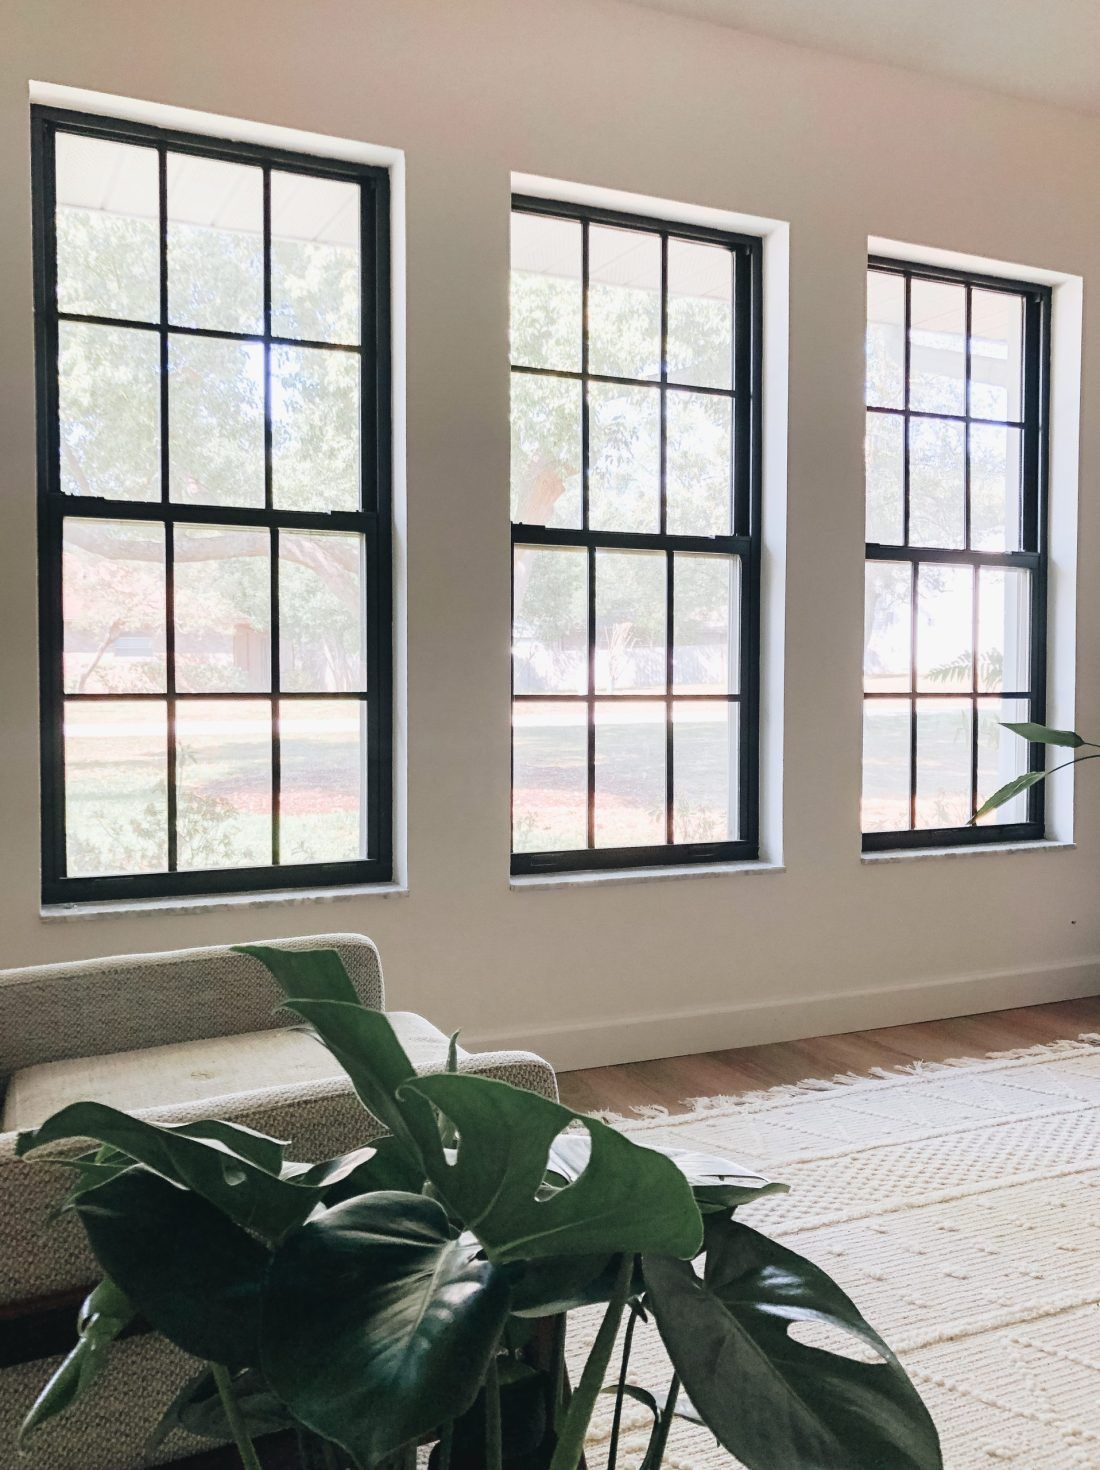 How To Paint Black Window Frames And Panes In 2020 Black Window Frames Painted Window Frames Black Windows